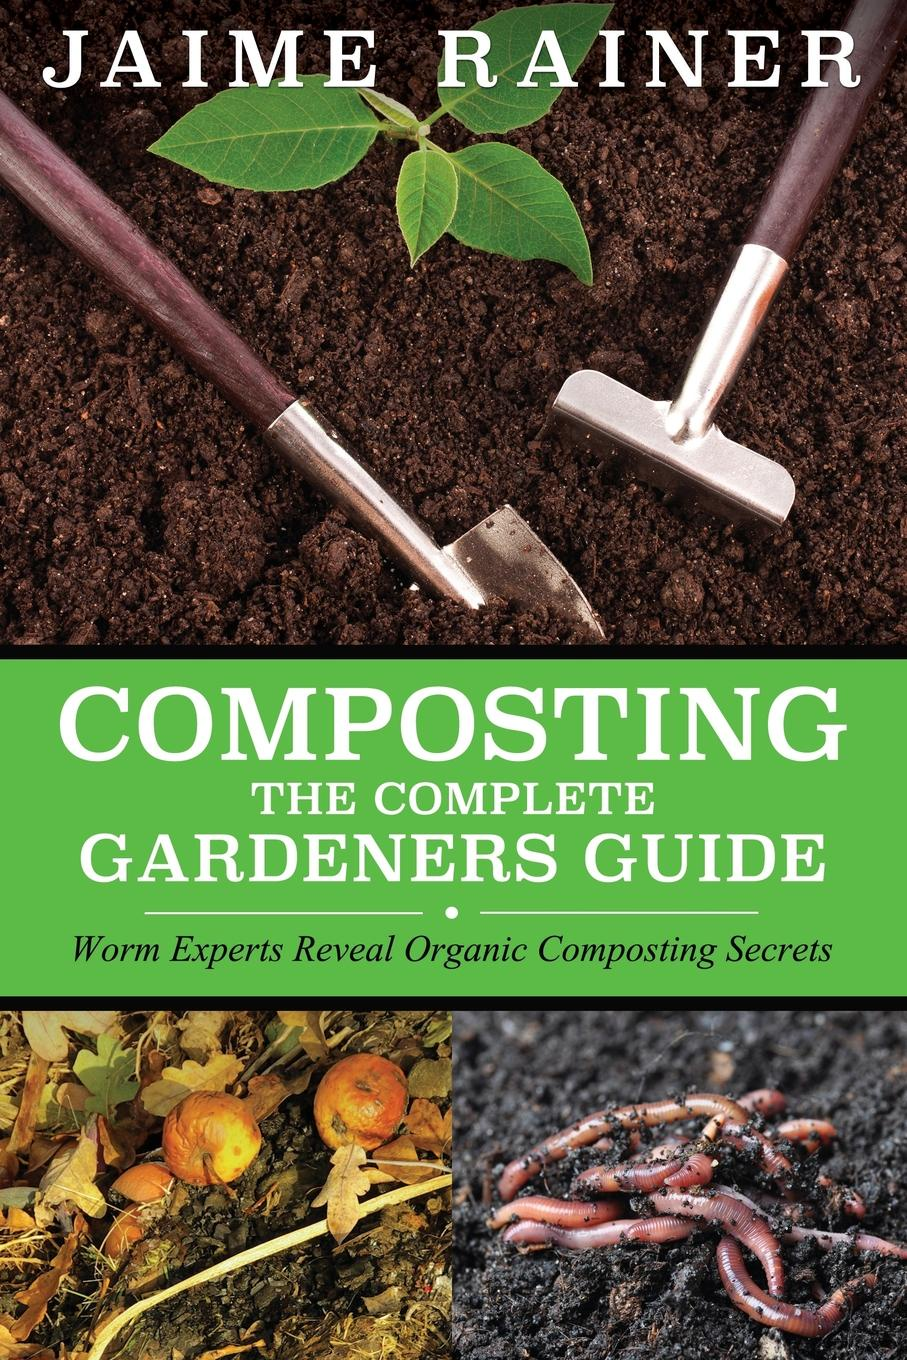 Jaime Rainer Composting. The Complete Gardeners Guide джемпер marciano guess 74g543 5356z g835